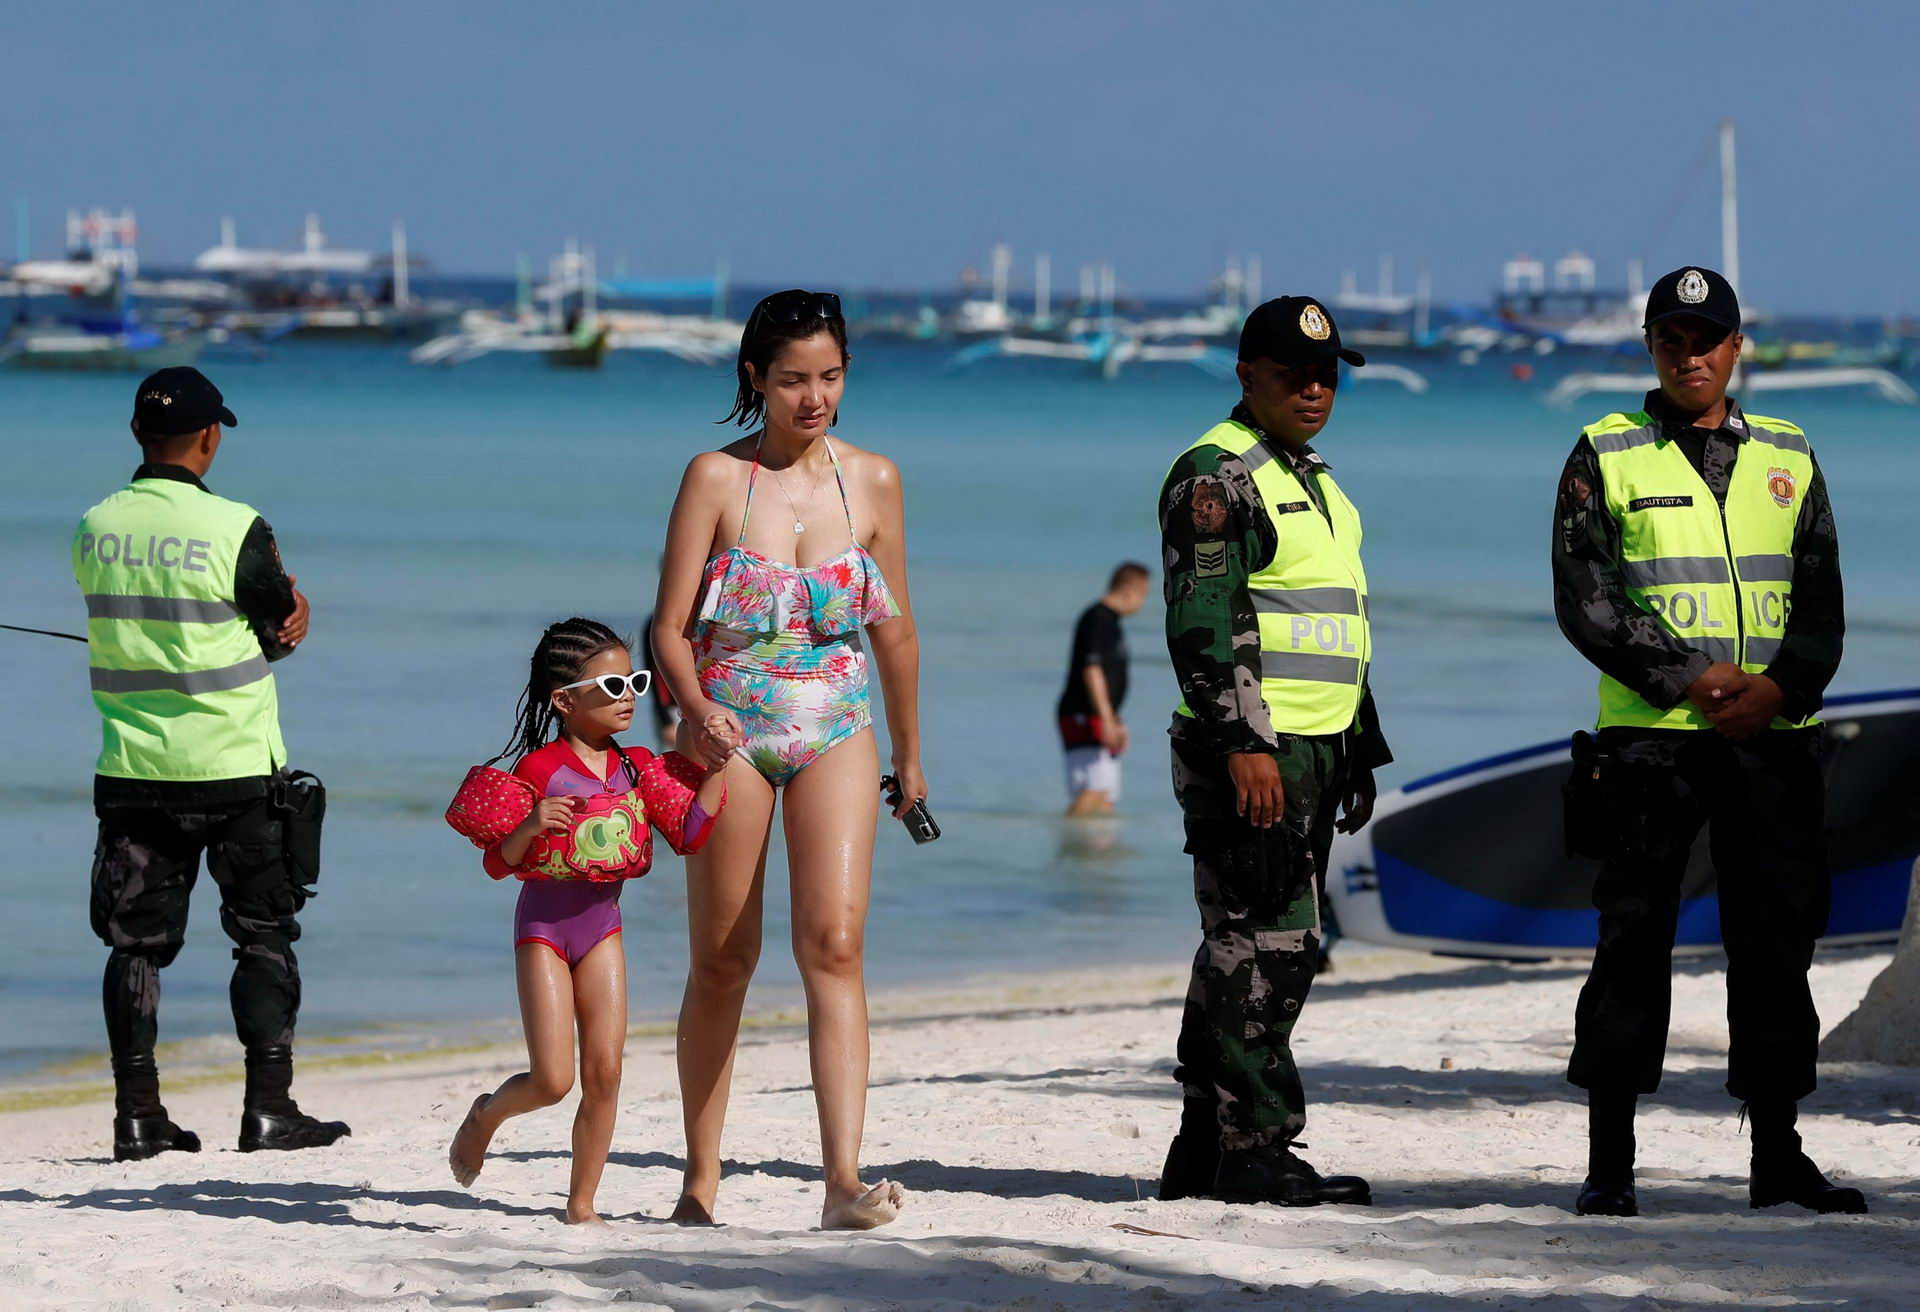 Tourists walk past policemen, one day before the temporary closure of the holiday island Boracay, in the Philippines